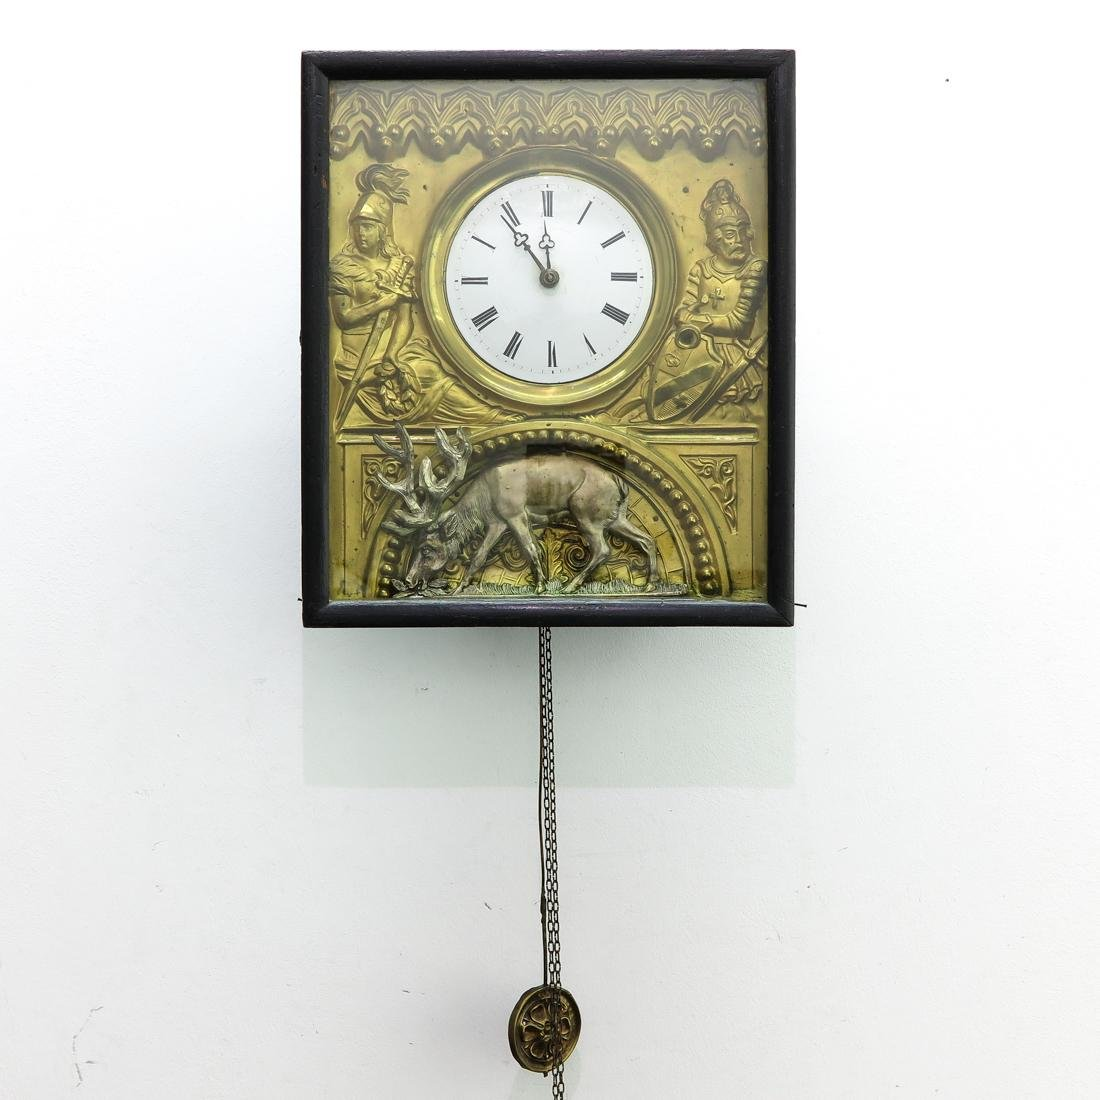 19th Century German Wall Clock